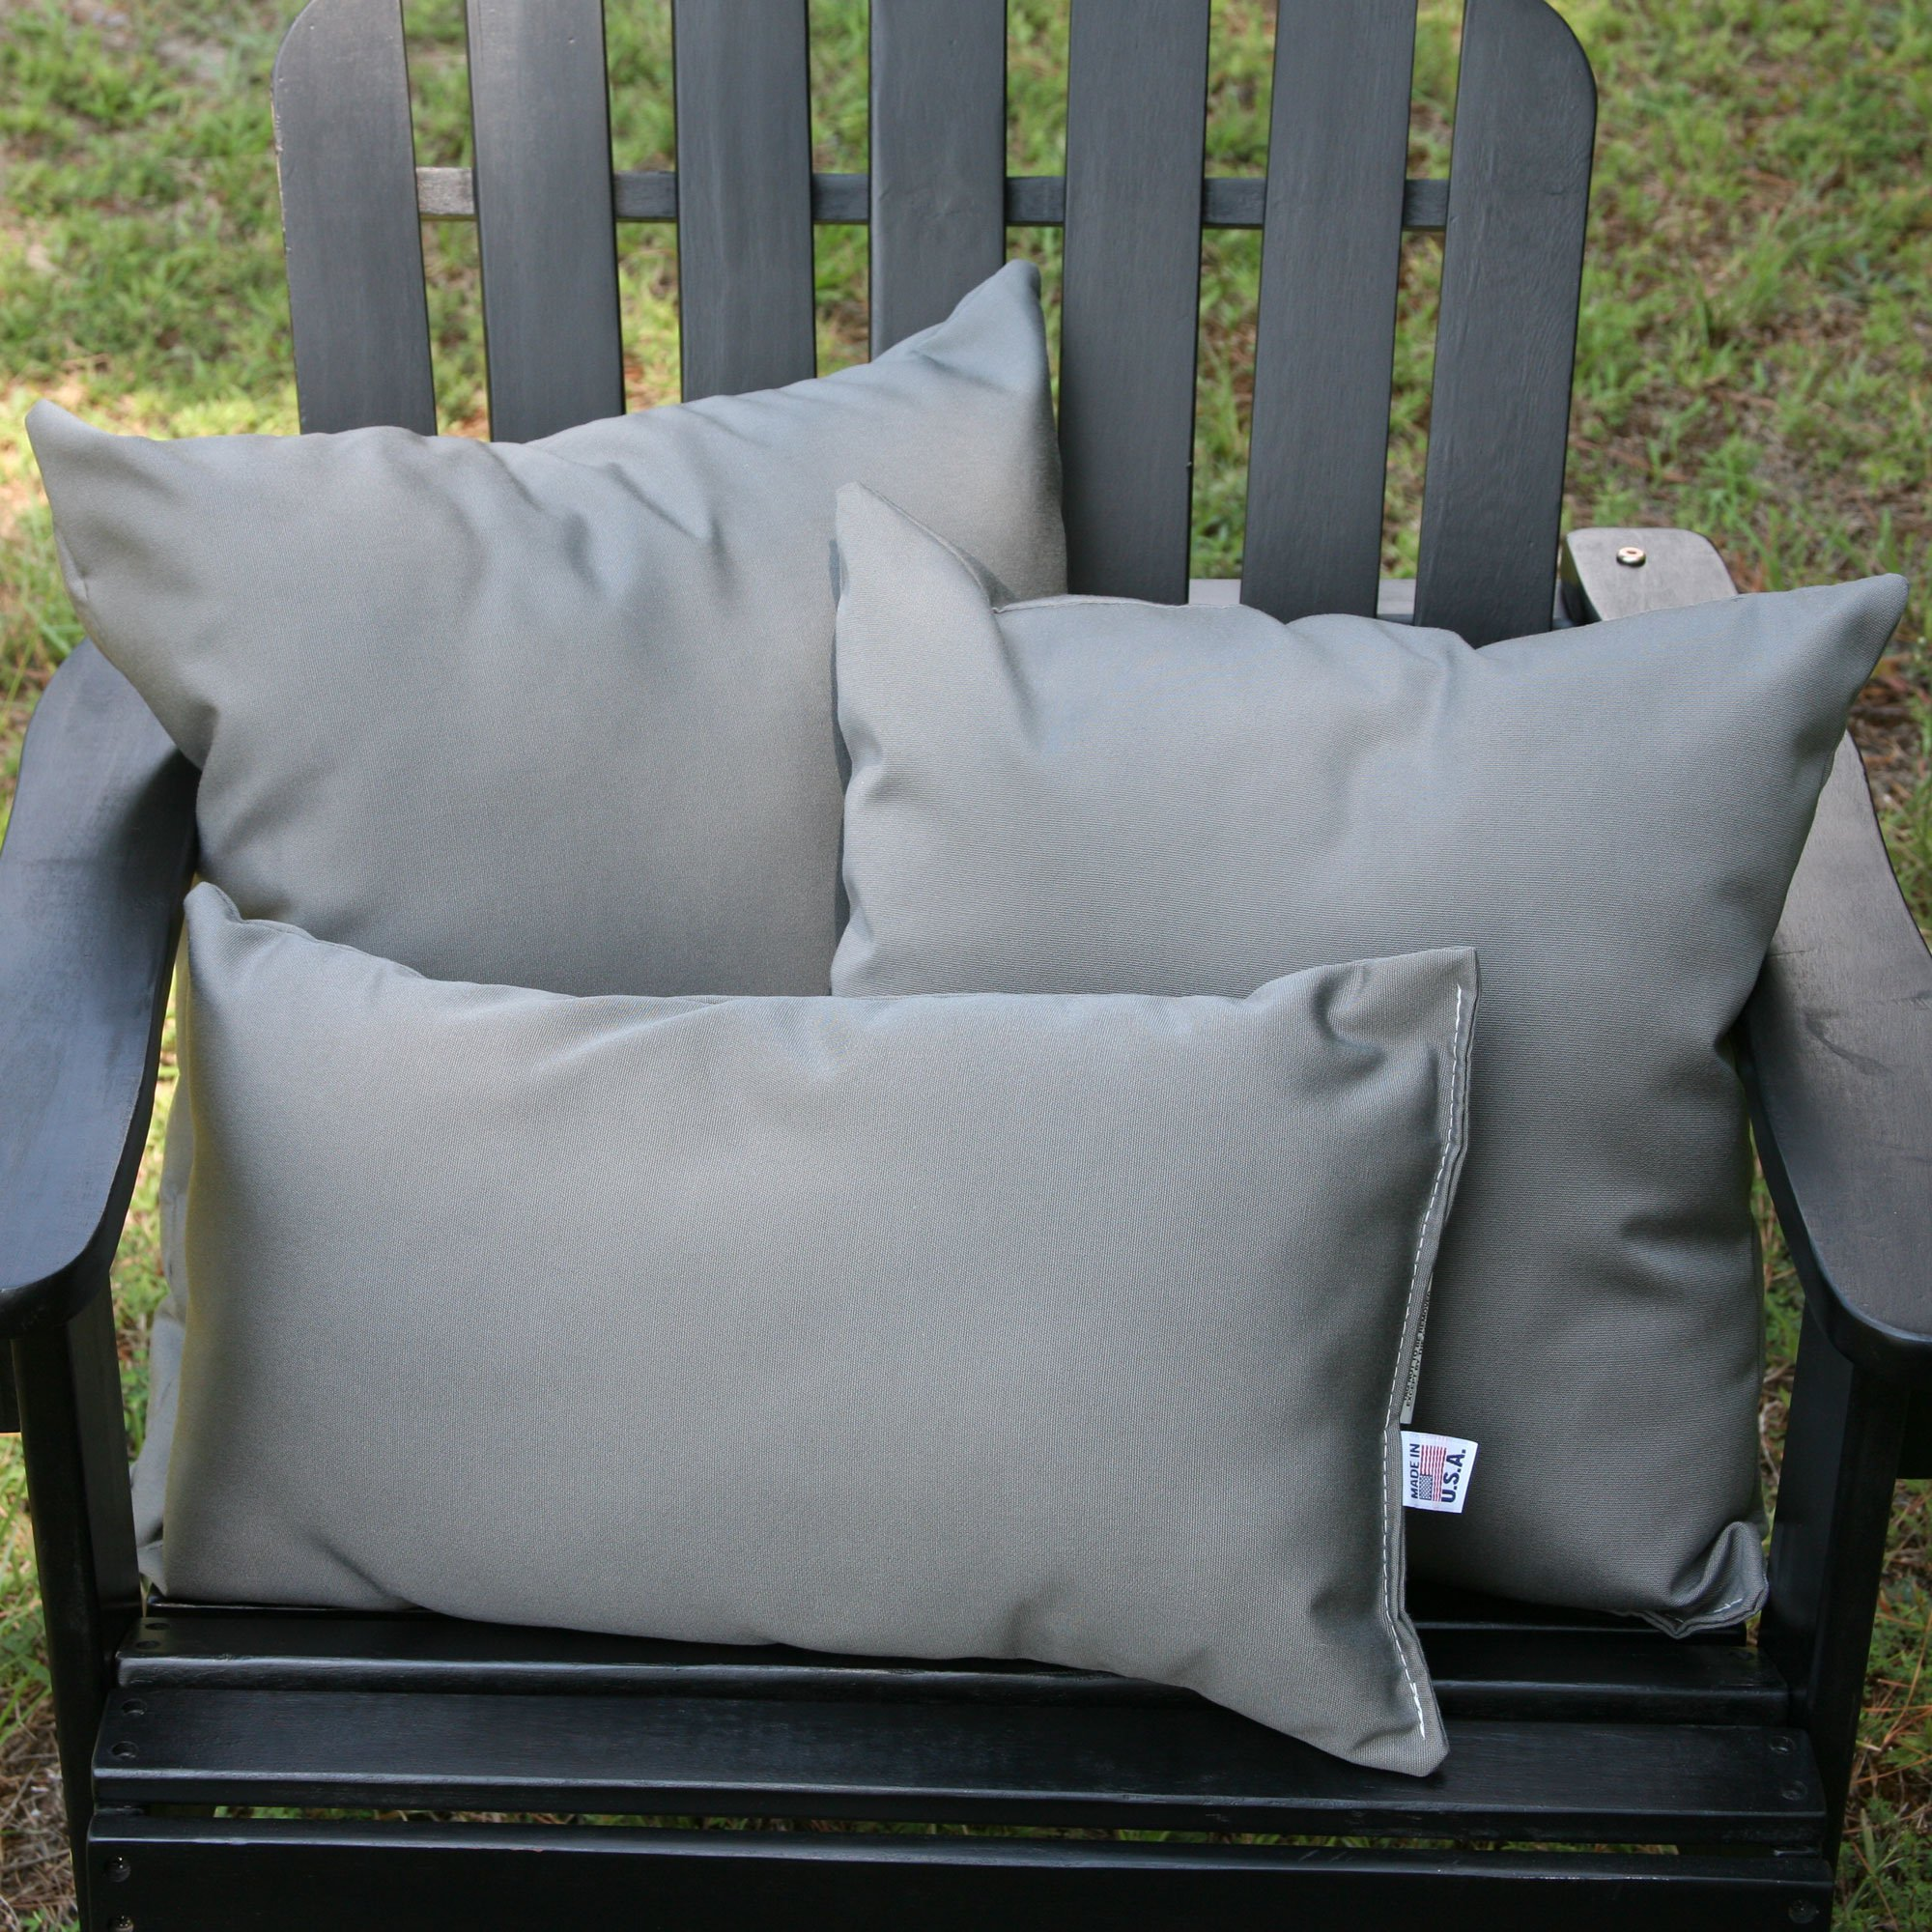 storage directly cheap pin buy pillows suppliers from outdoor cushion cover quality mac pillow china